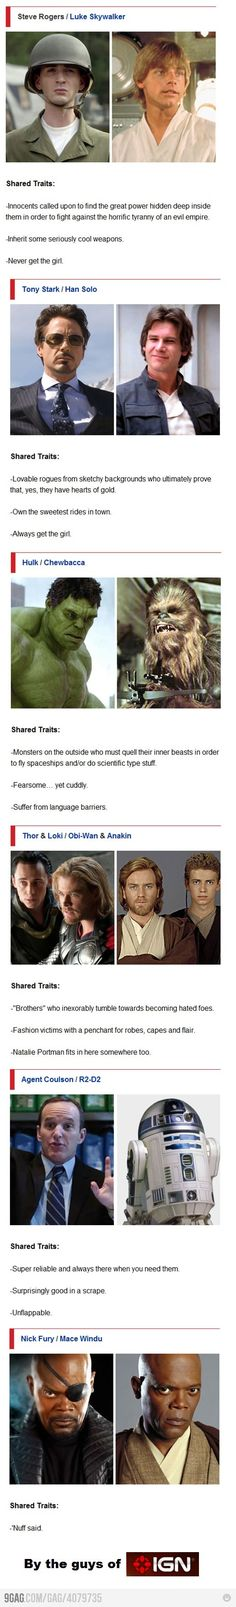 I love Avengers way more than I love Star Wars, but this is simply awesome!